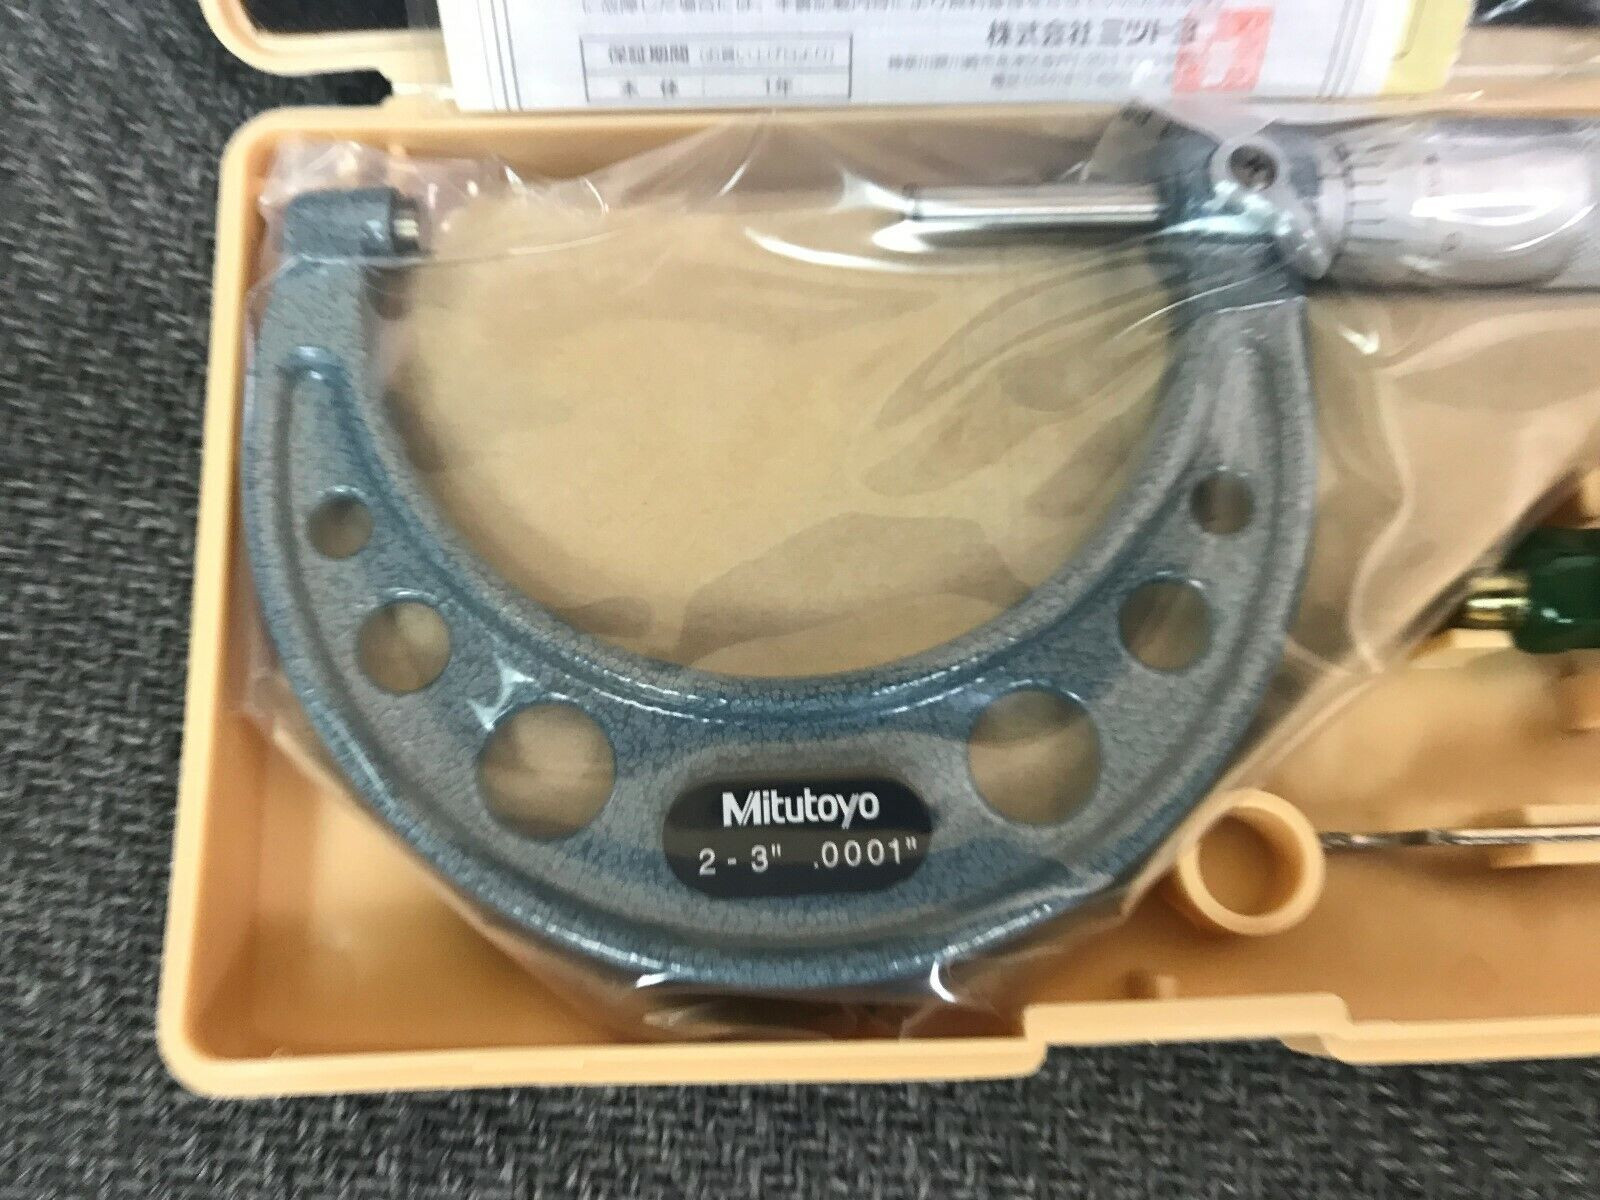 "2-3"" MITUTOYO OUTSIDE MICROMETER 103-217 .0001""  RATCHET THI"